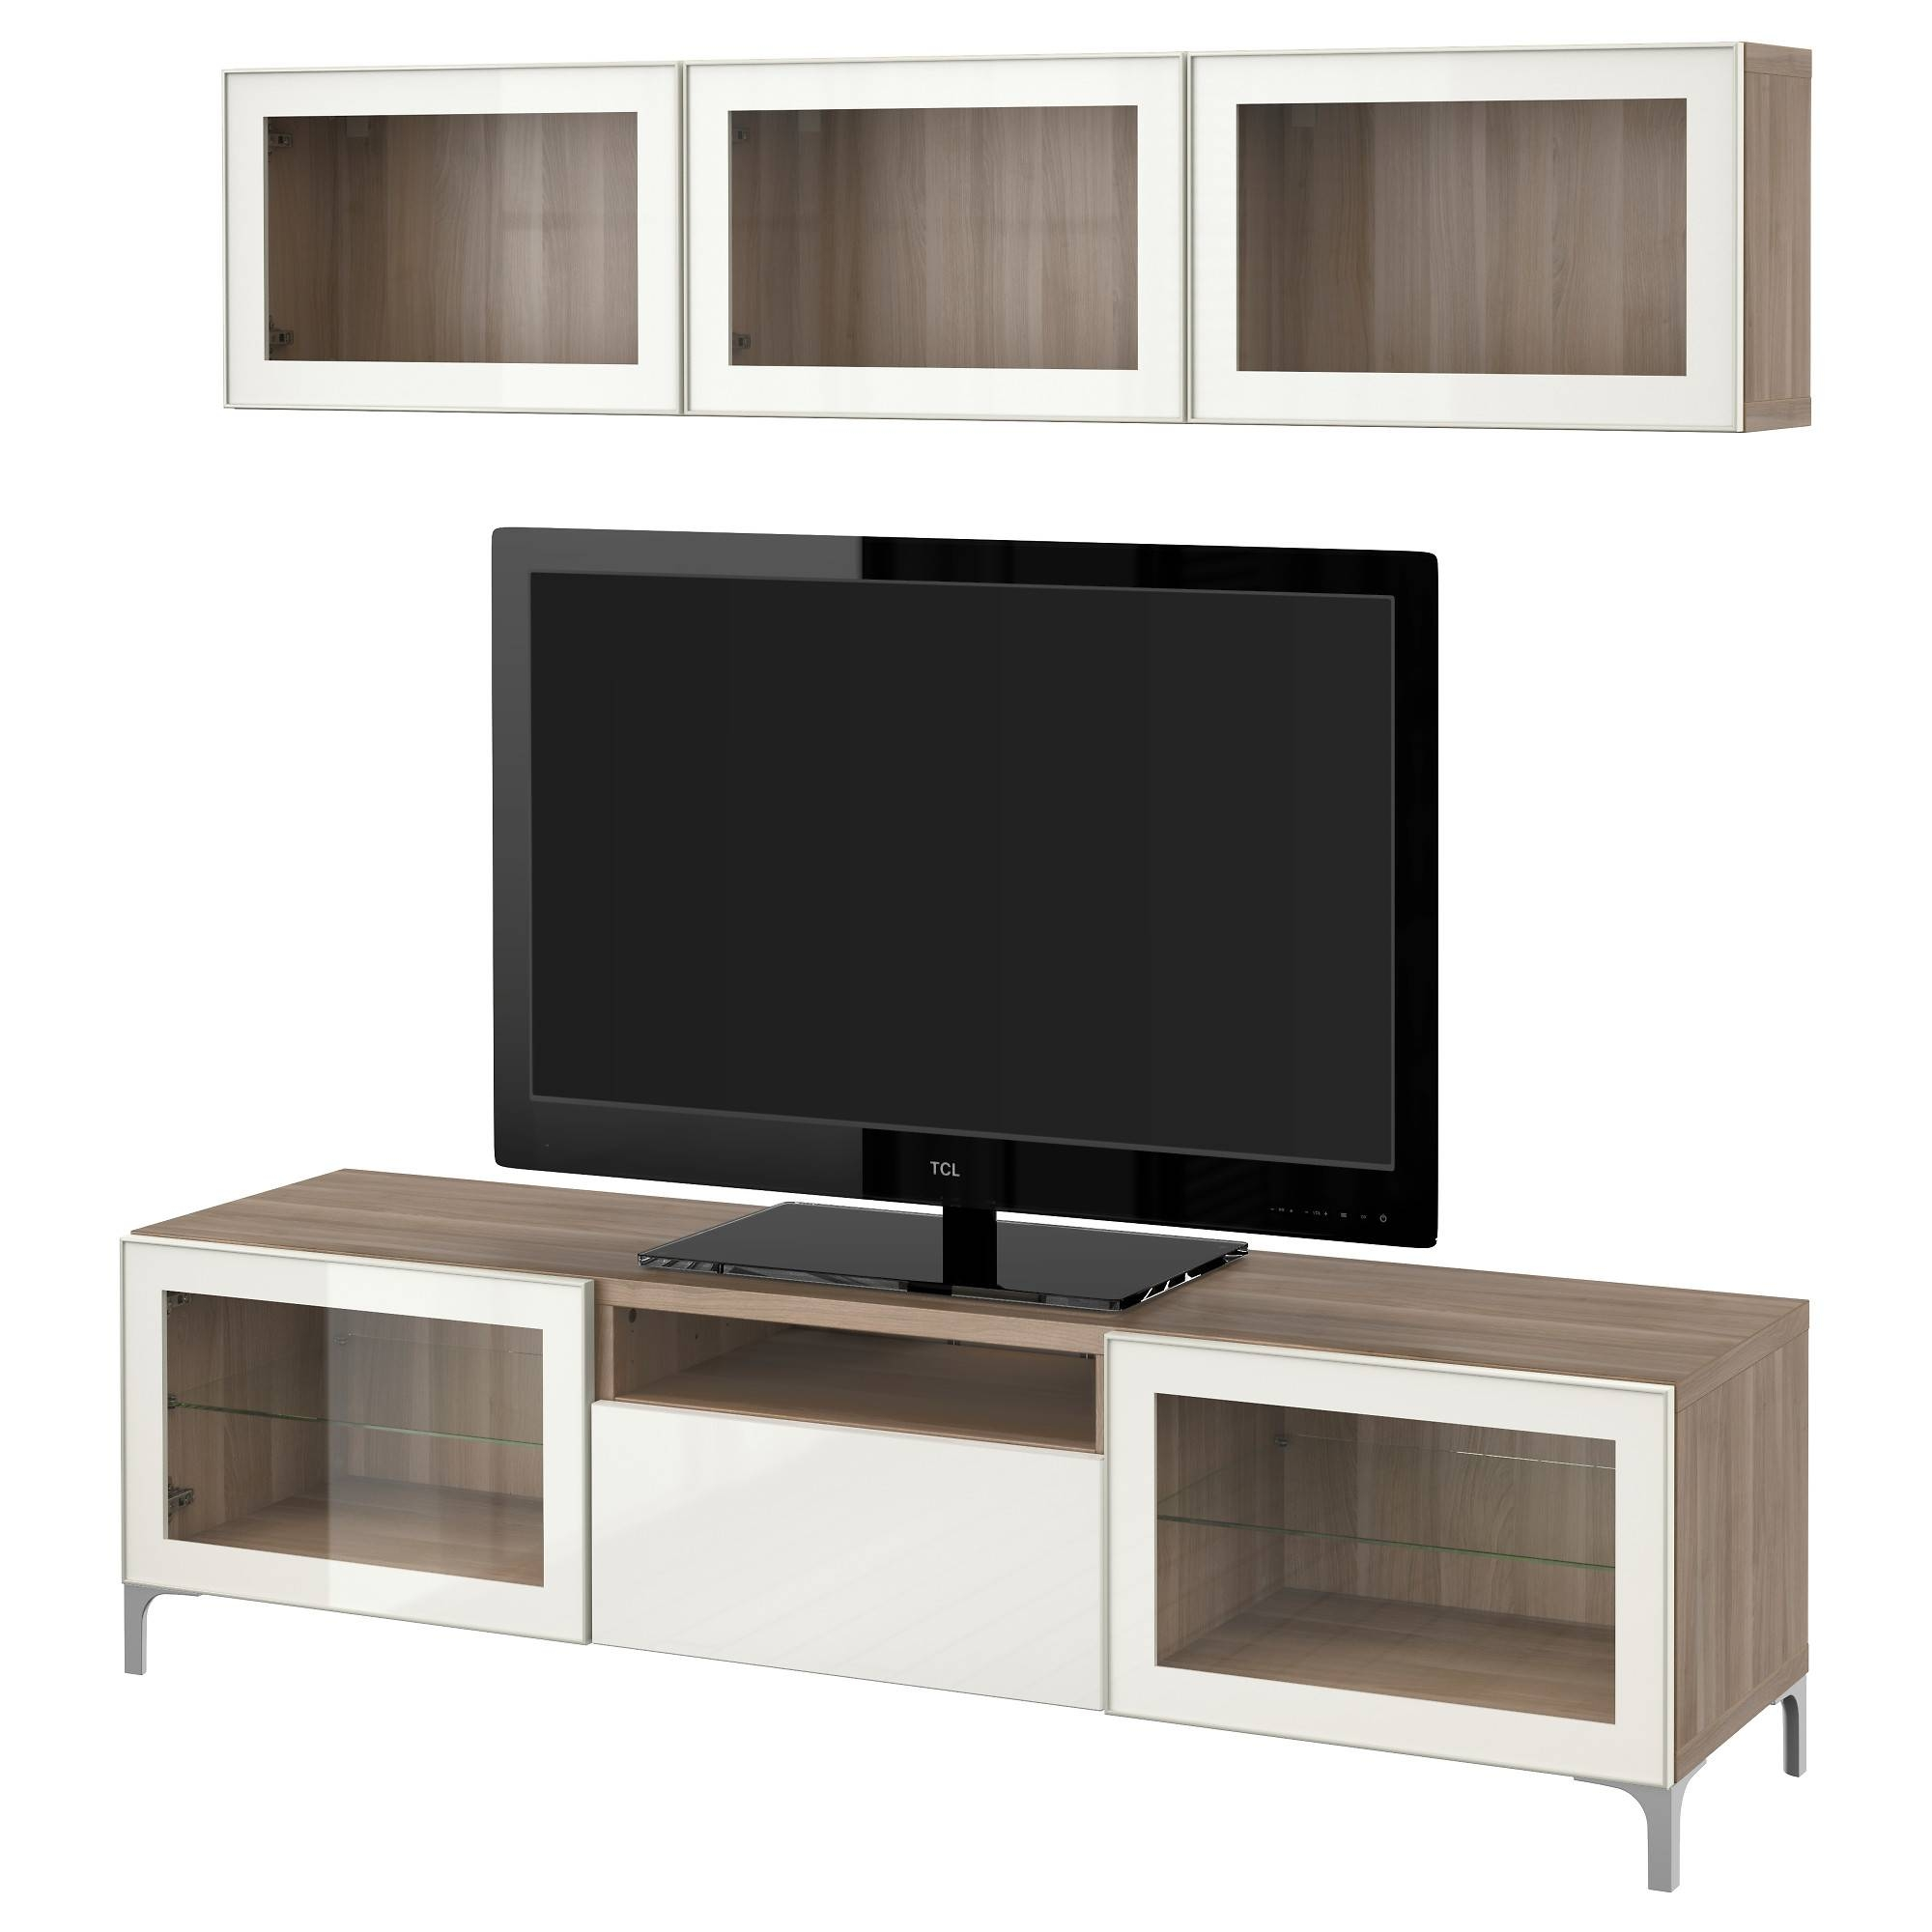 Bestå Tv Storage Combination/glass Doors - Walnut Effect Light intended for Walnut Tv Cabinets With Doors (Image 2 of 15)